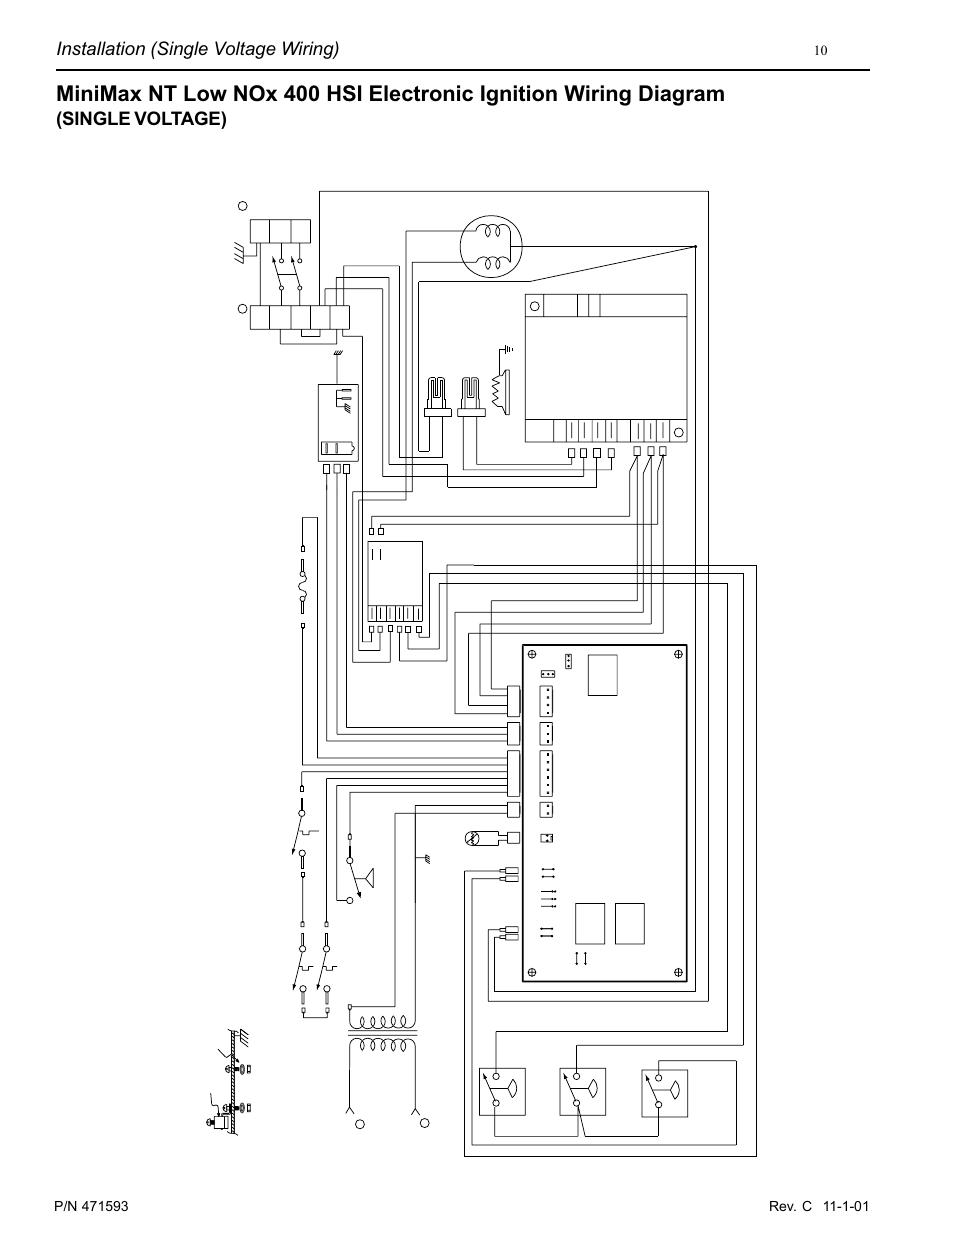 installation wiring diagram for industri installation (single voltage wiring), single voltage ...